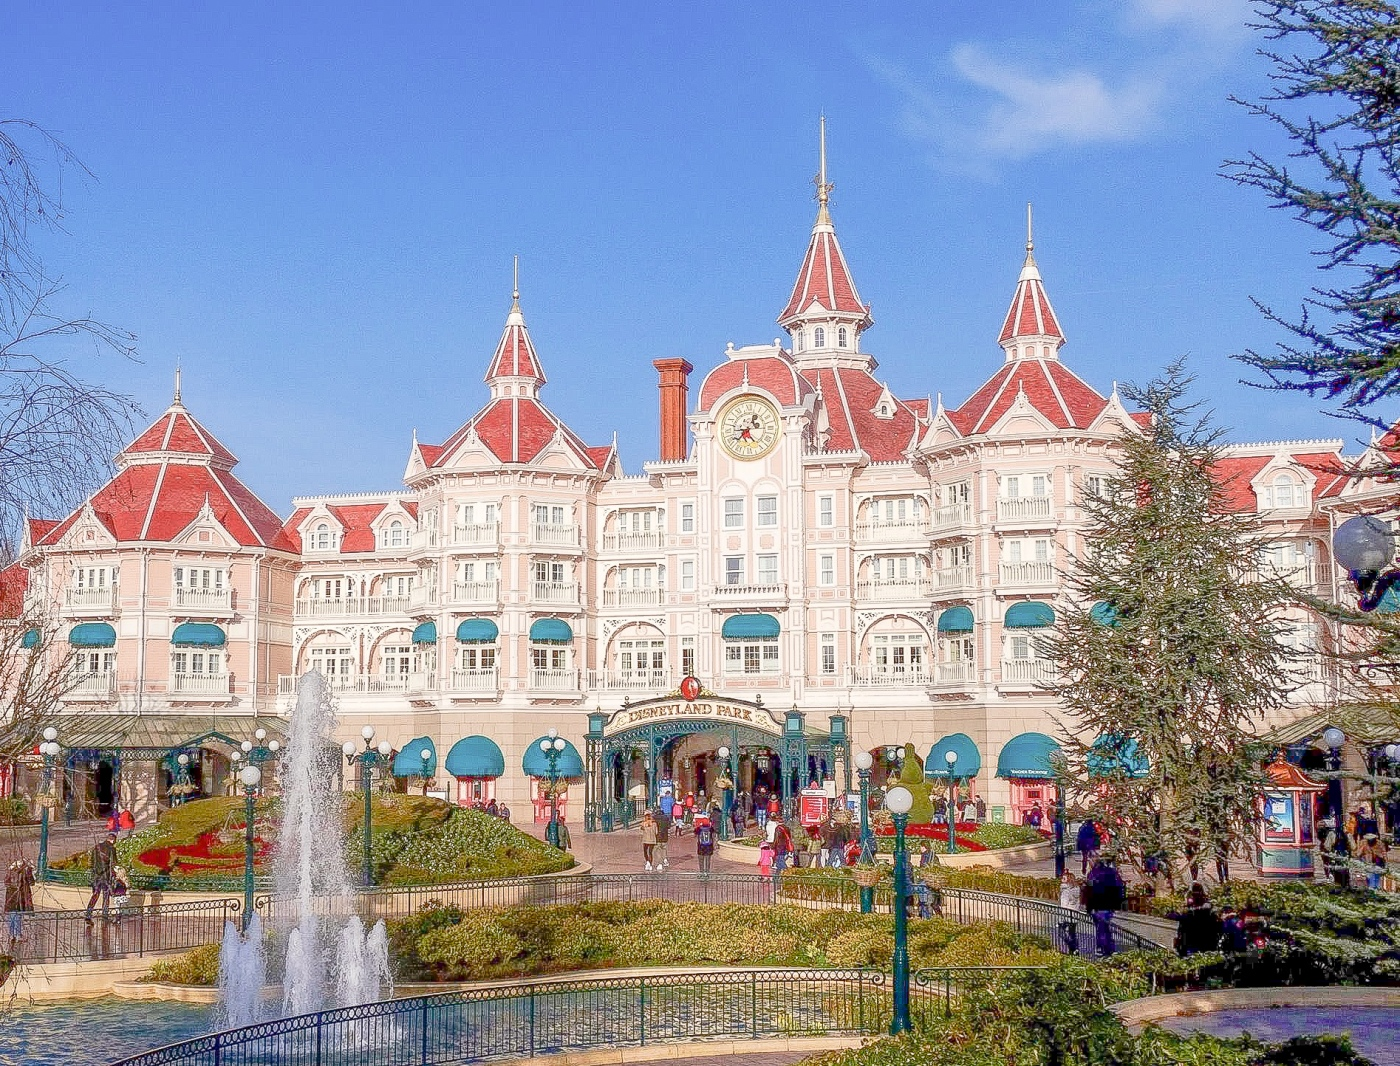 Disneyland Paris Magic Kingdom entrance with fountains, greenery and buildings